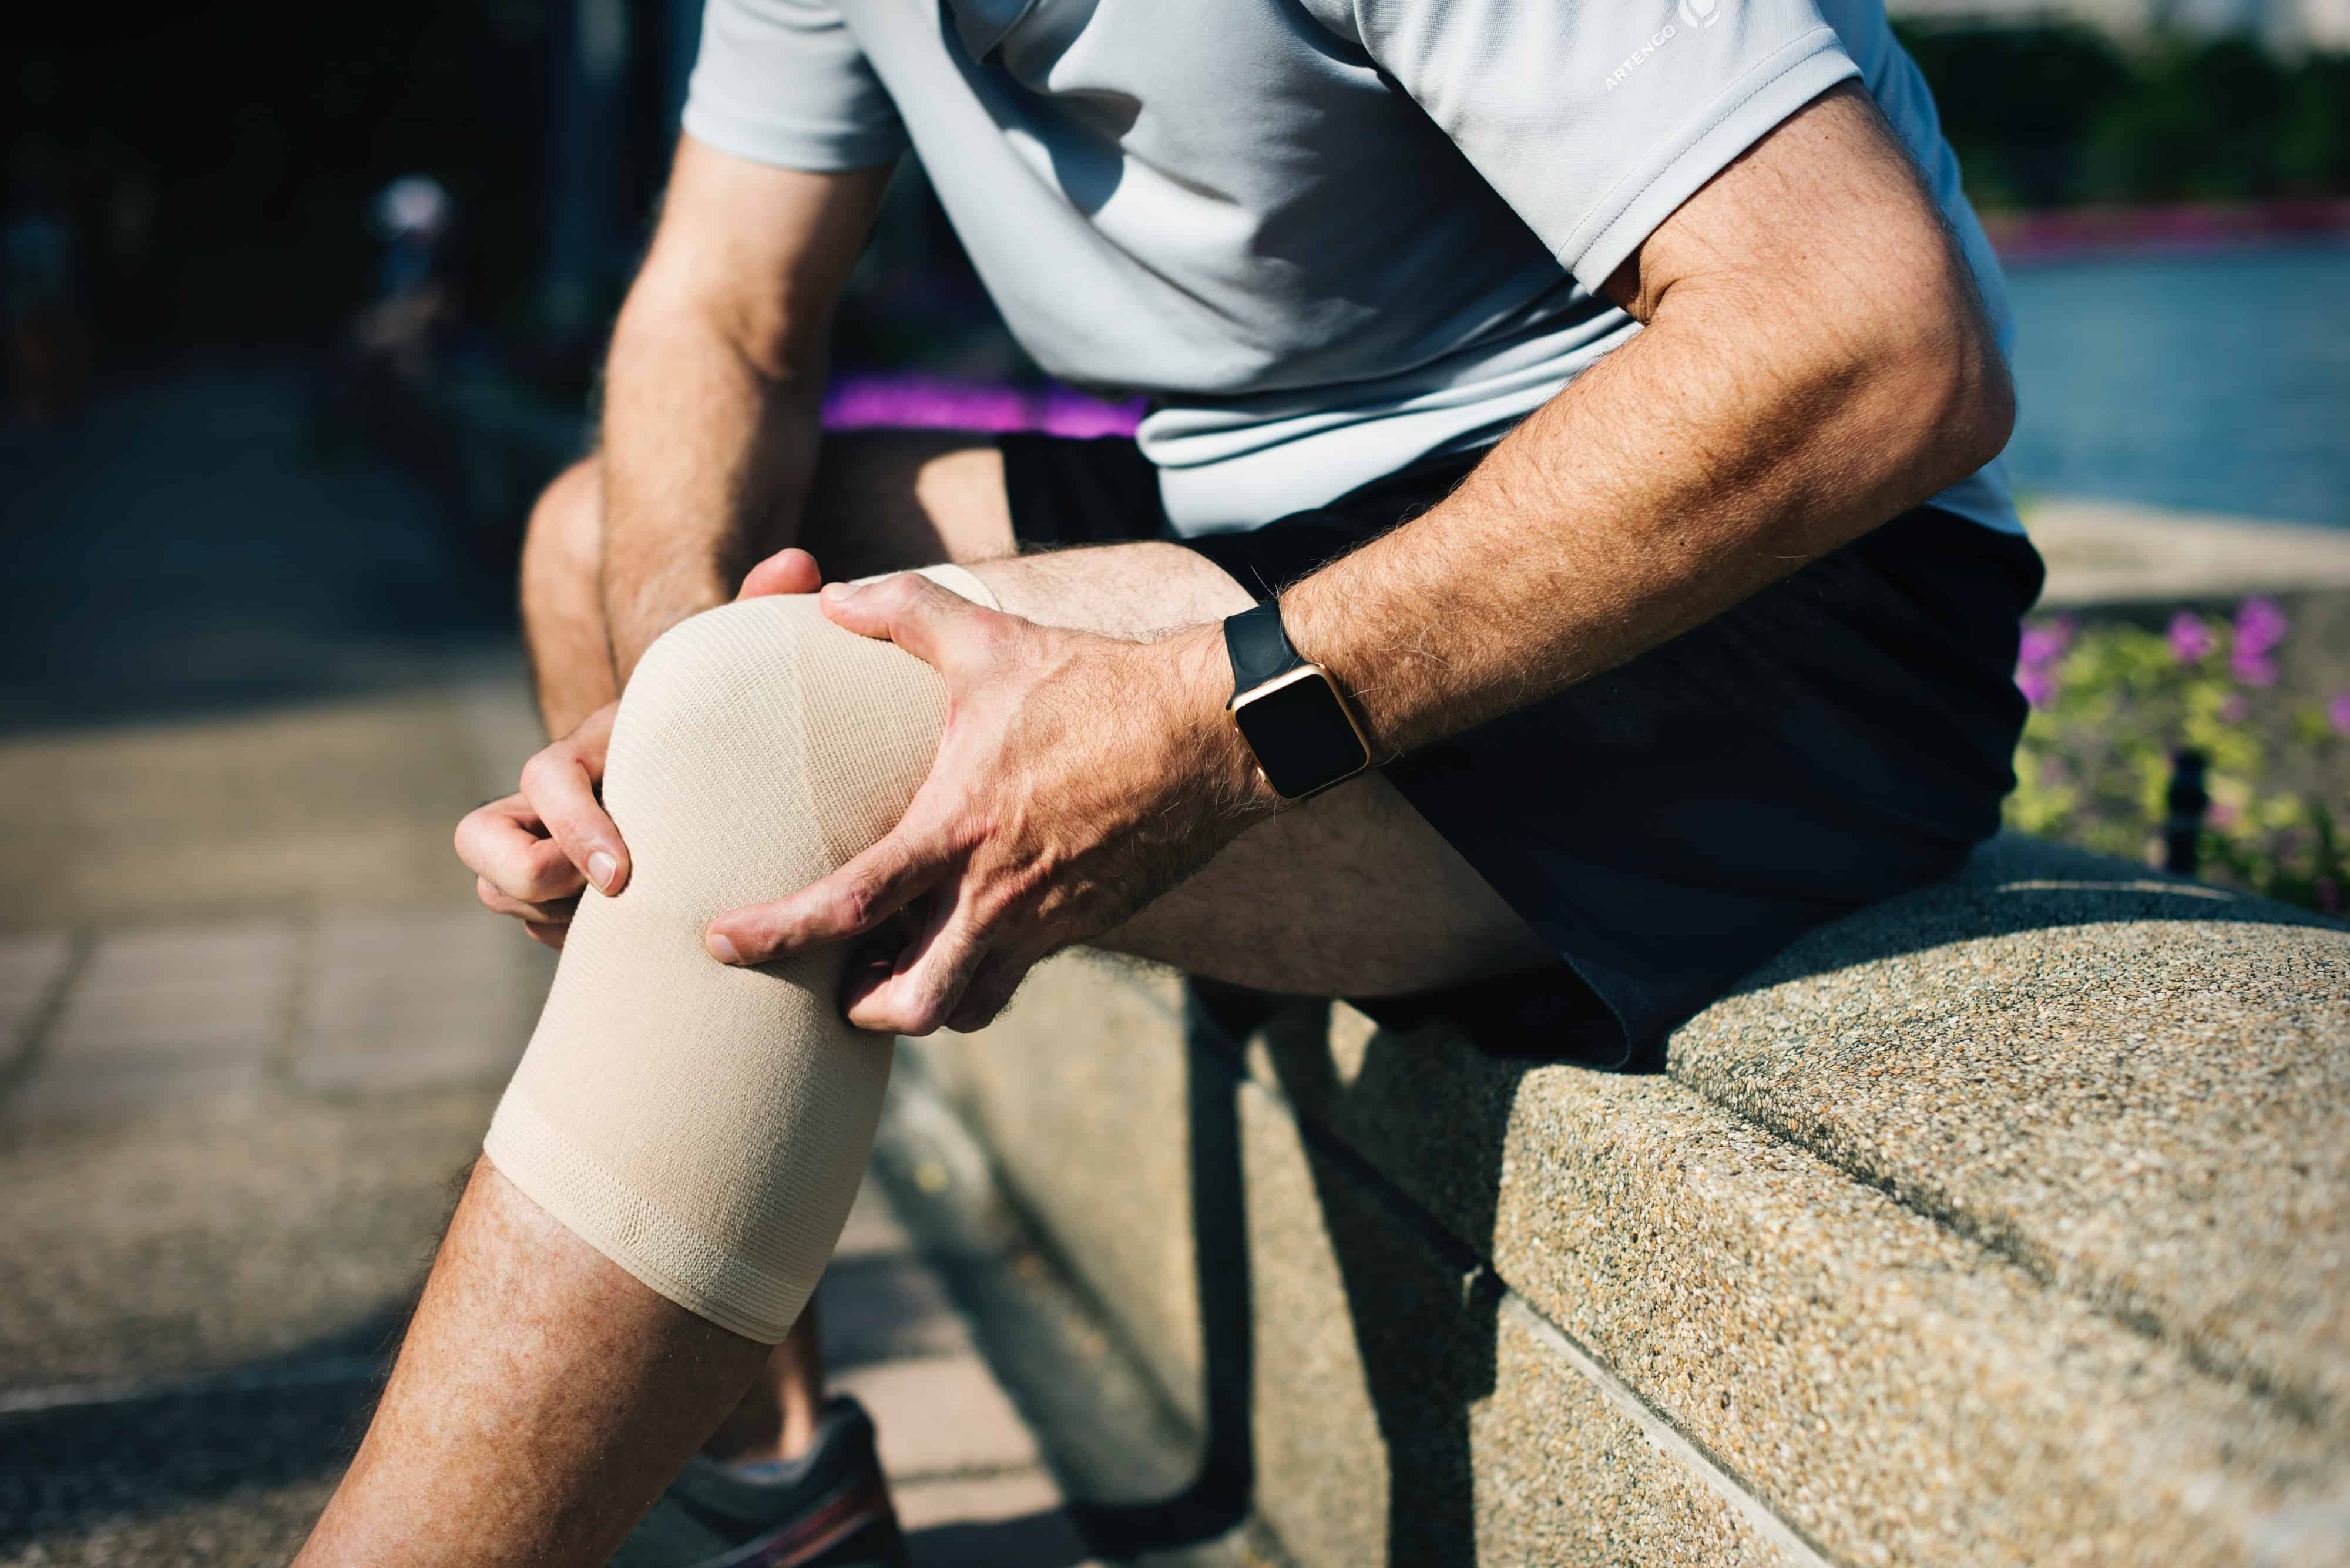 Massage therapy for arthritis in new york city midtown and the financial district